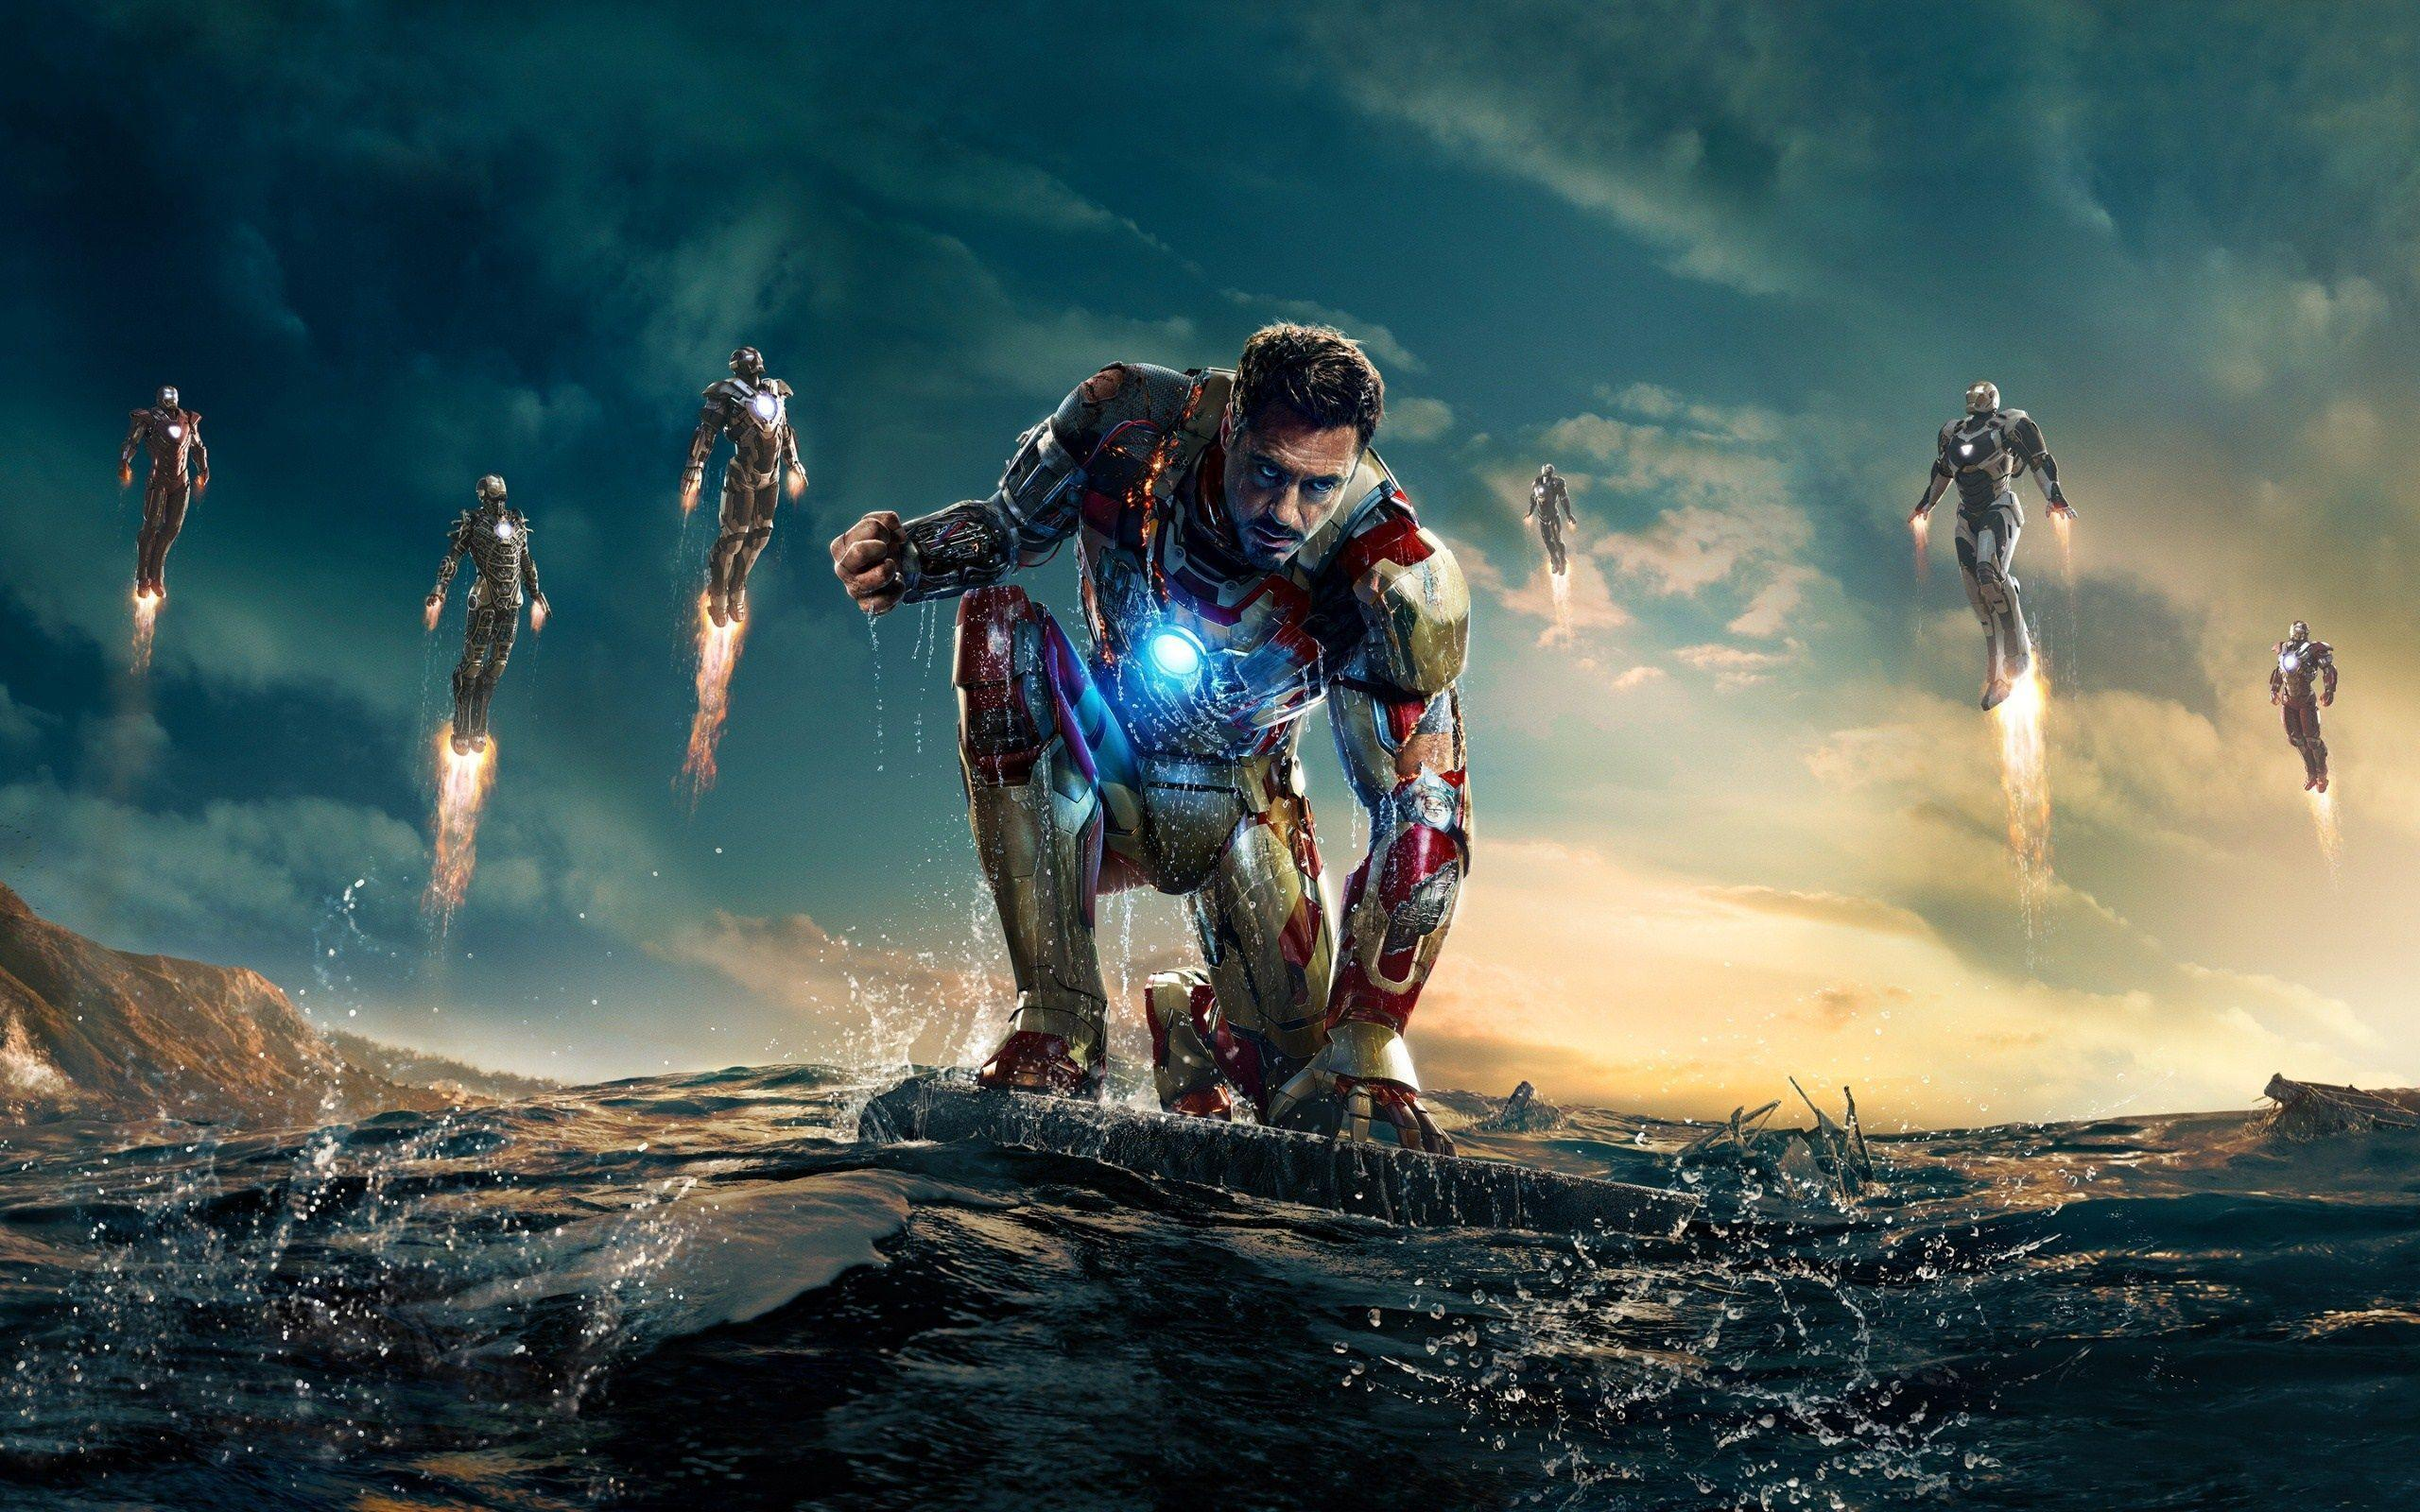 Iron Man 3 Movie Poster HD Wallpapers